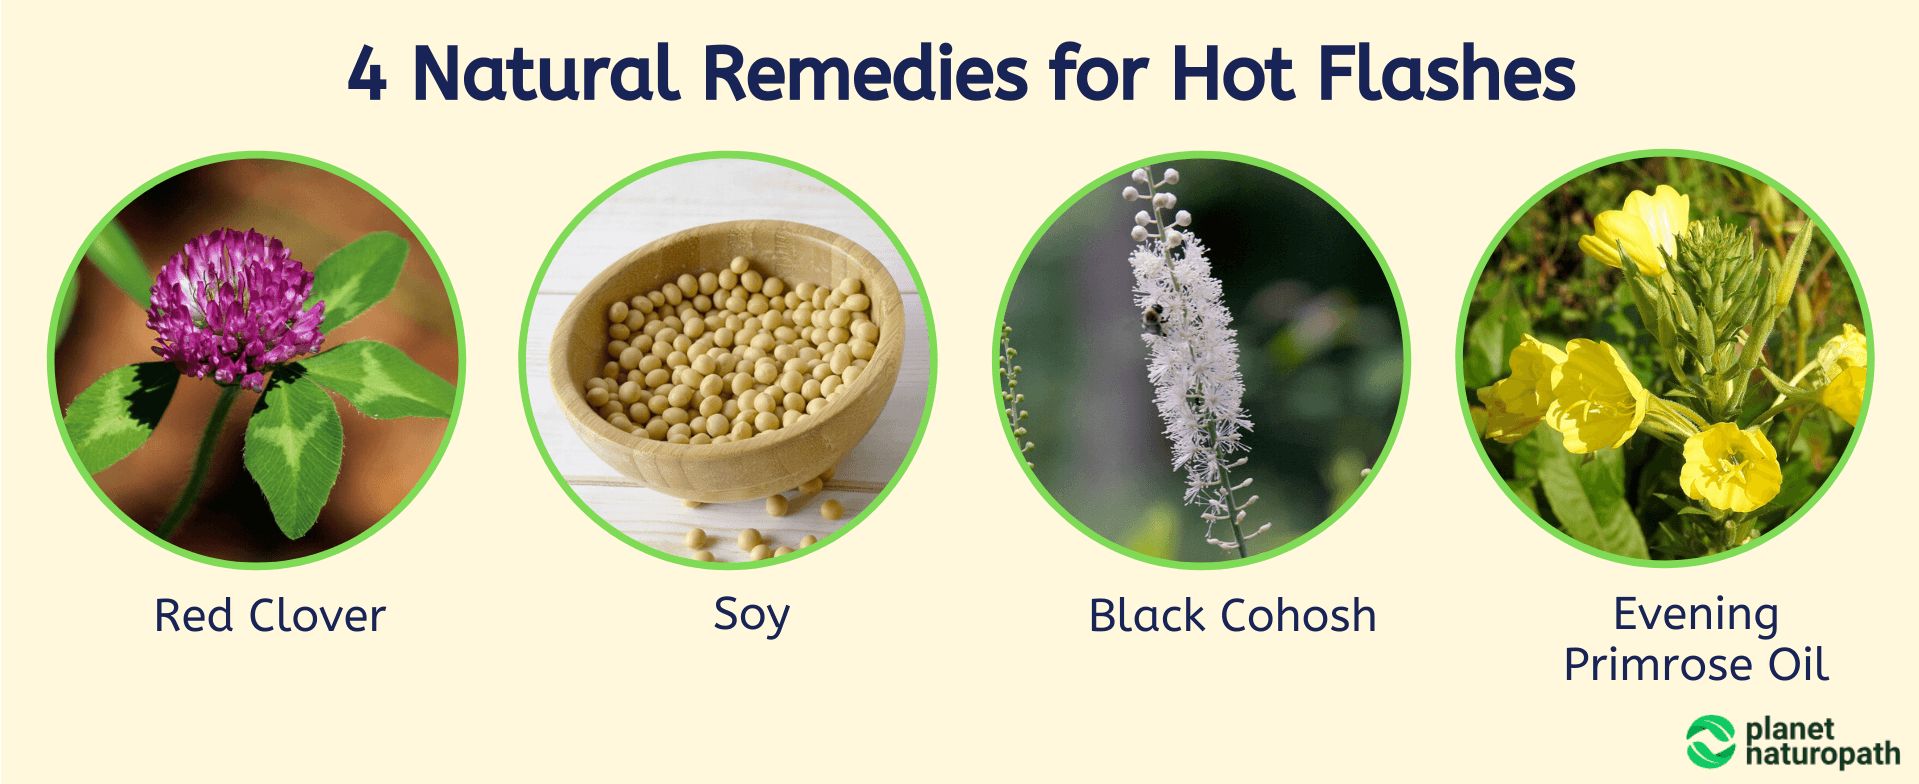 4-Natural-Remedies-for-Hot-Flashes